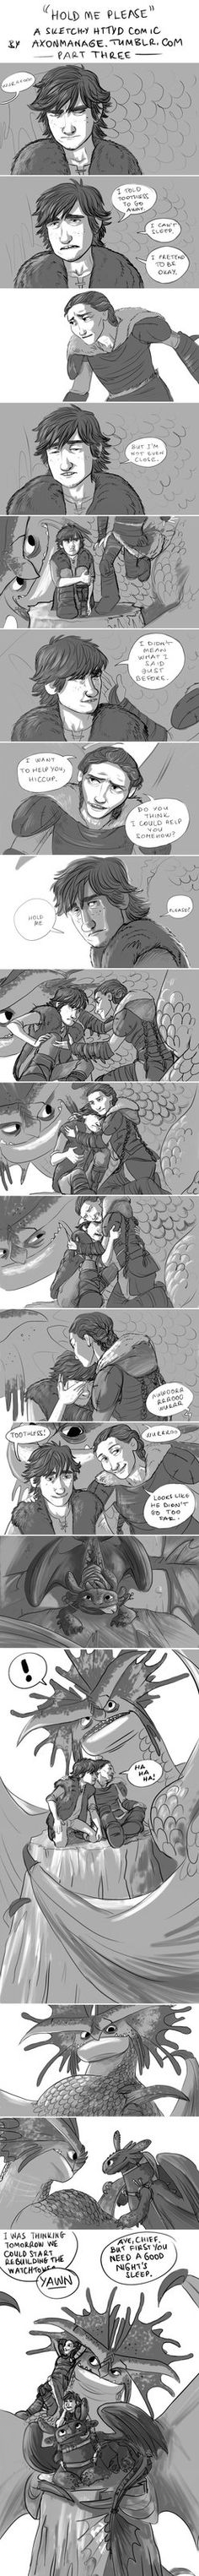 Hold Me Please - a sketch-y HTTYD comic-part three by axondrive  Ugh-- he describes my entire life in this one-- 'cept I don't have a friend that'll cuddle me.